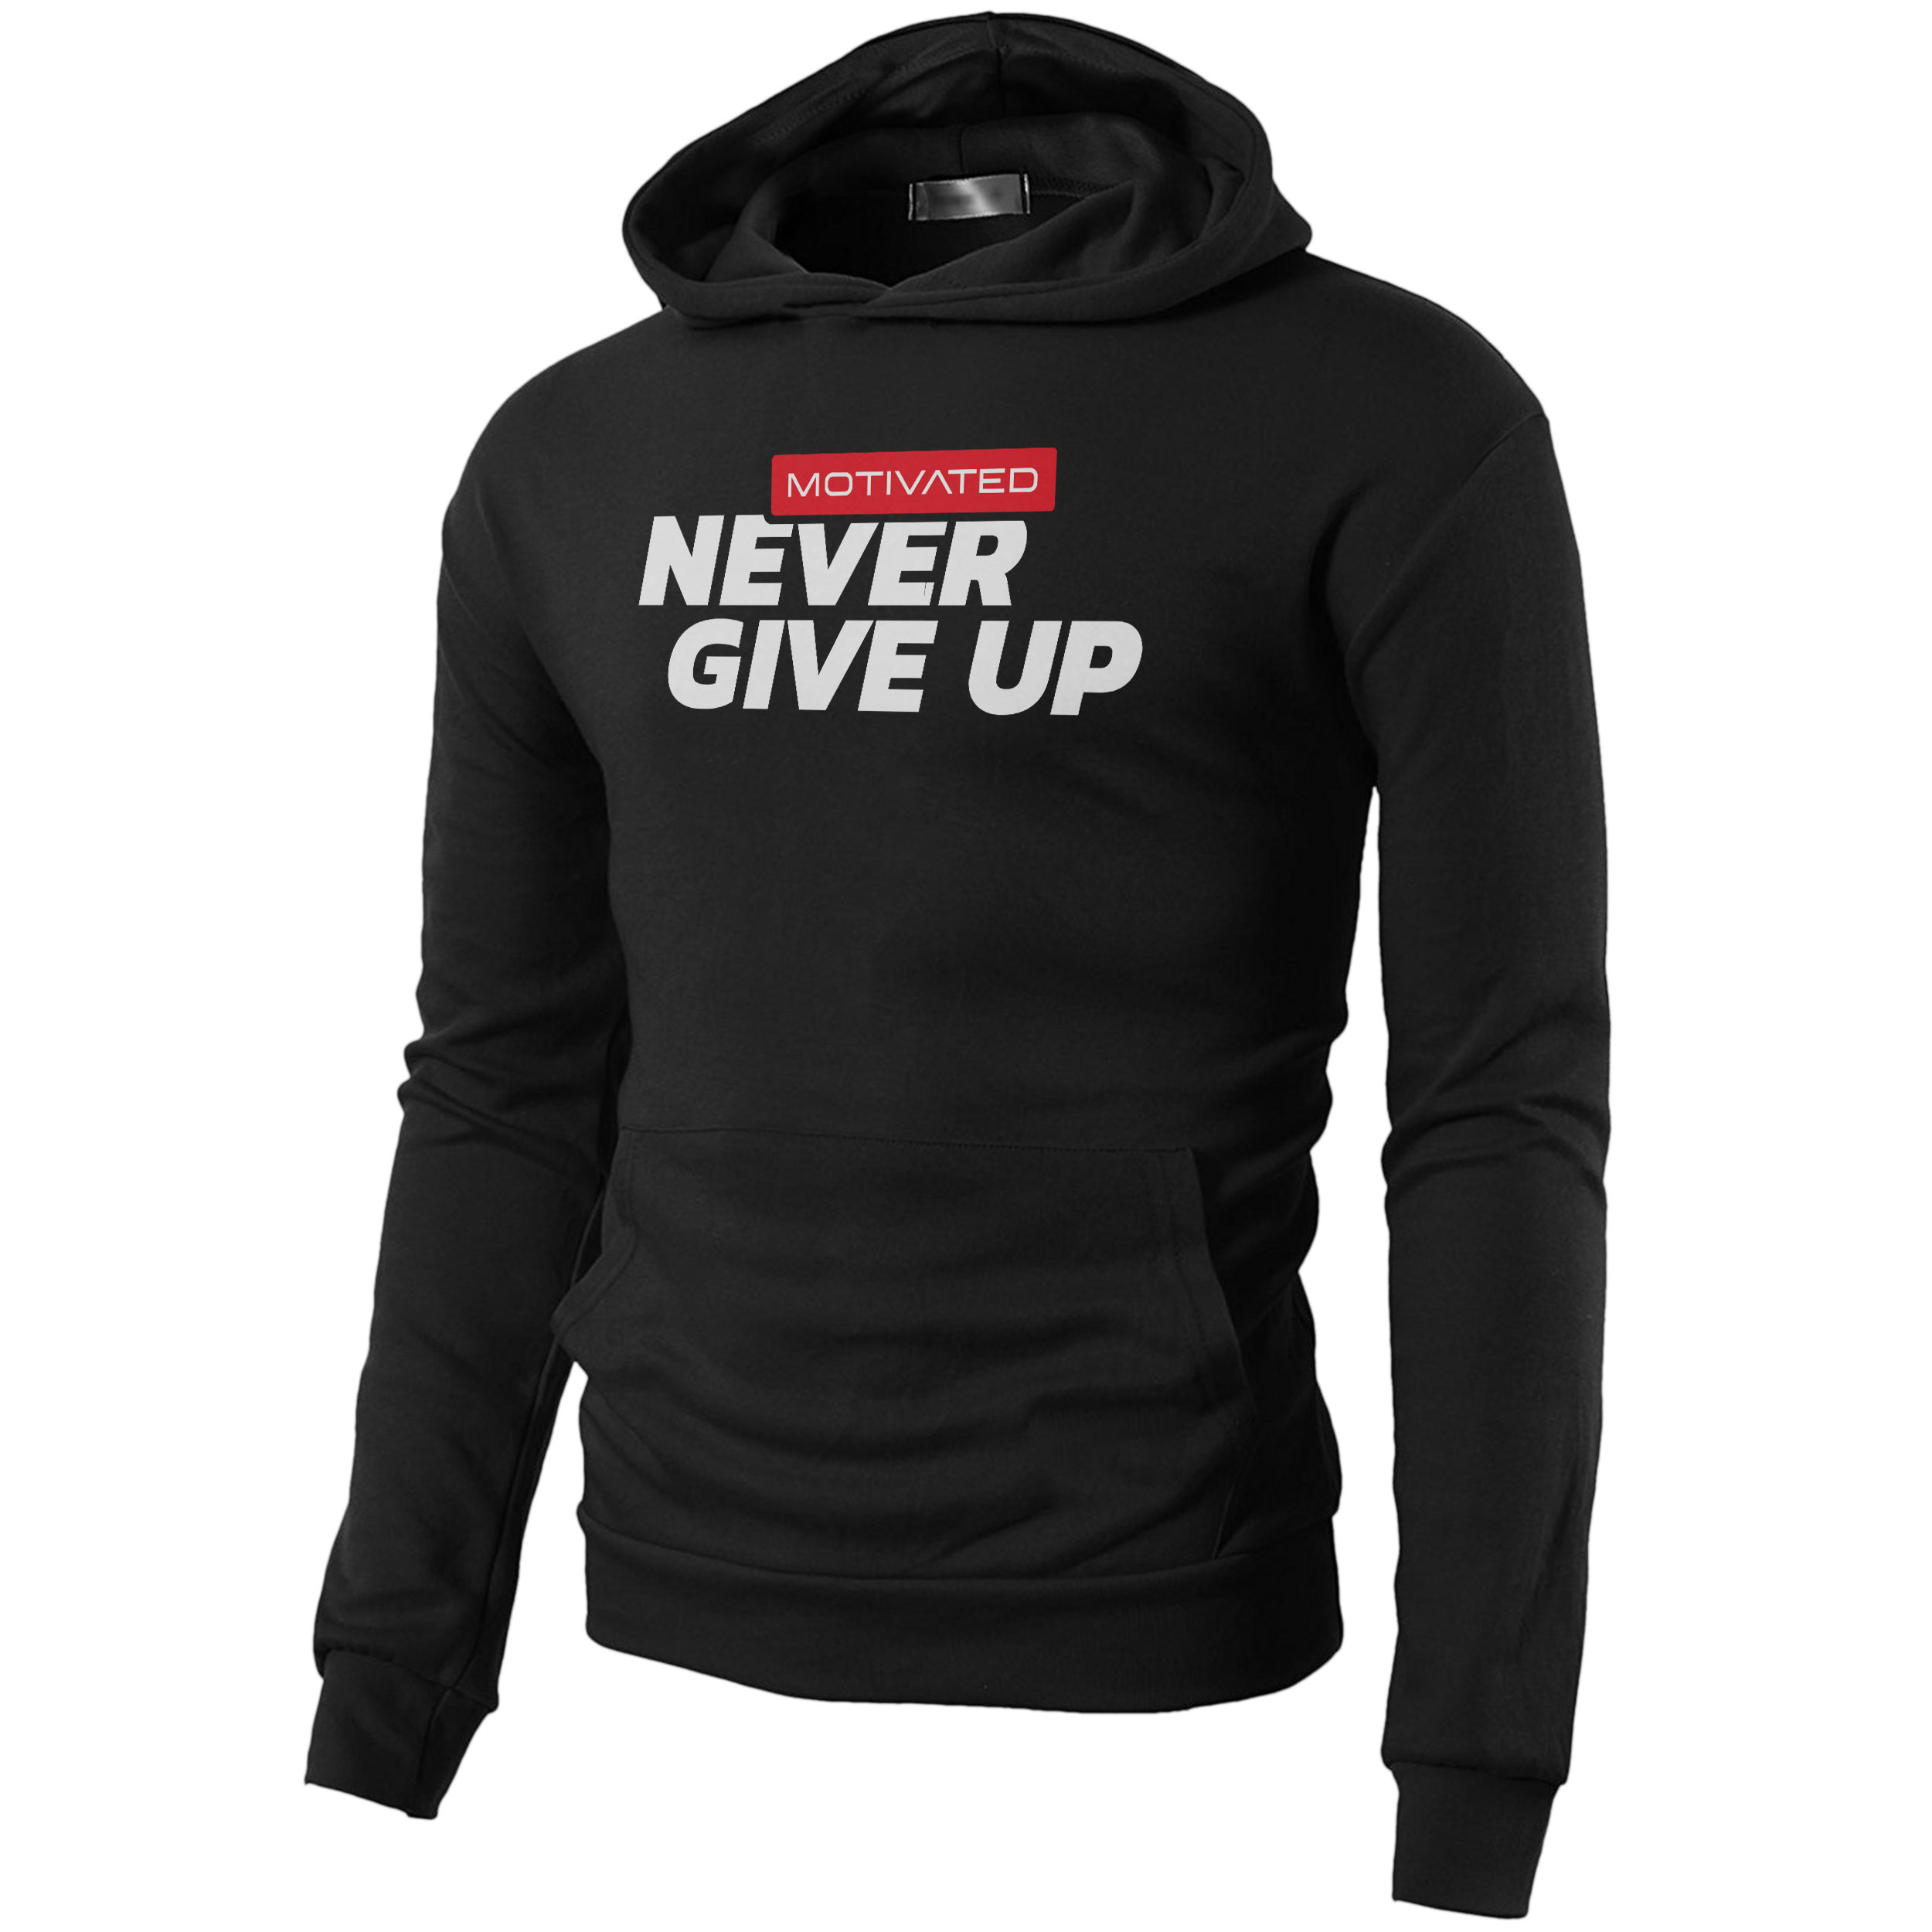 motivated-mikina-na-cviceni-never-give-up-324